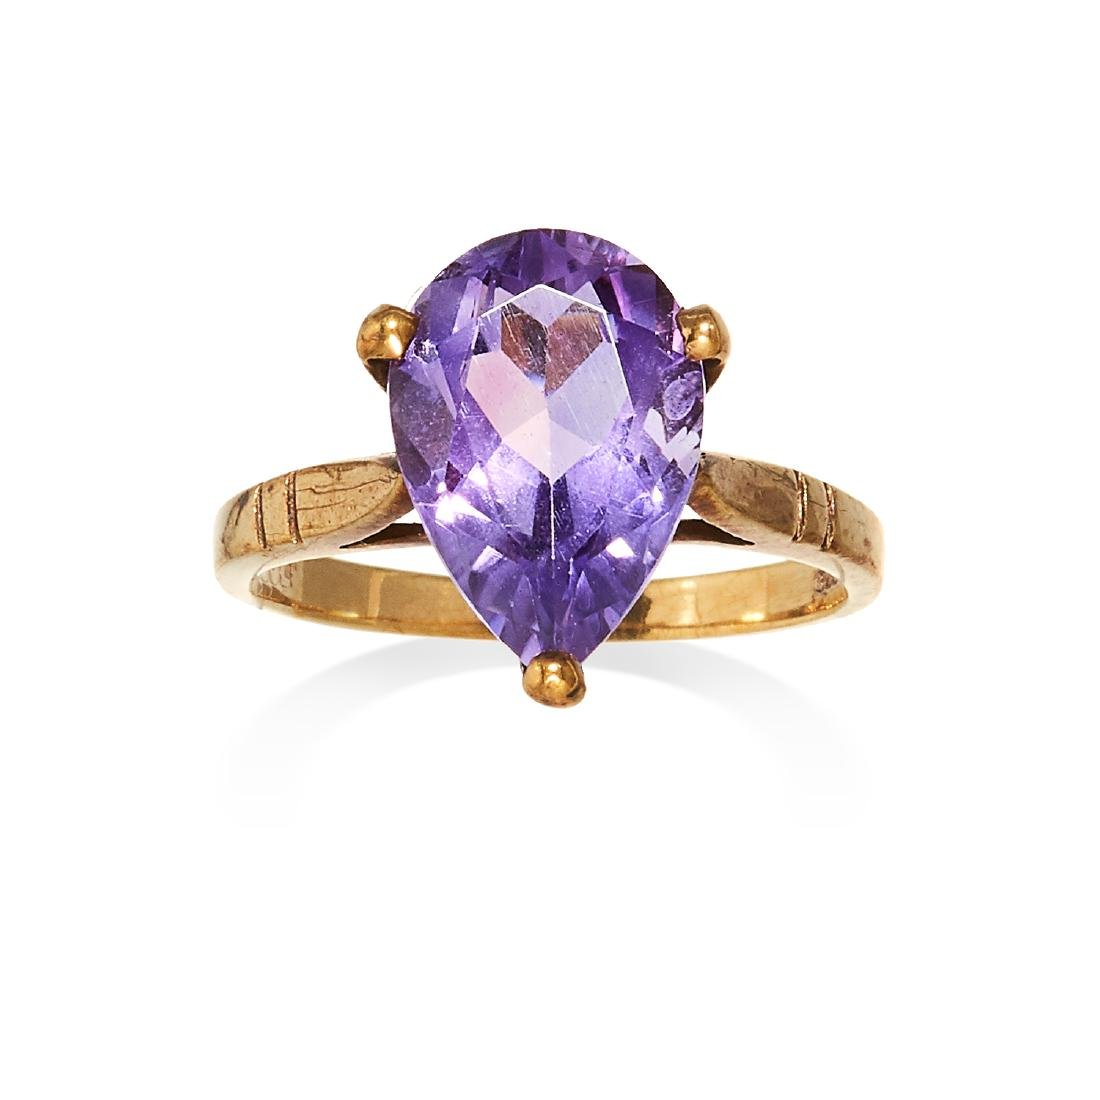 AN AMETHYST DRESS RING in yellow gold, set with a pear